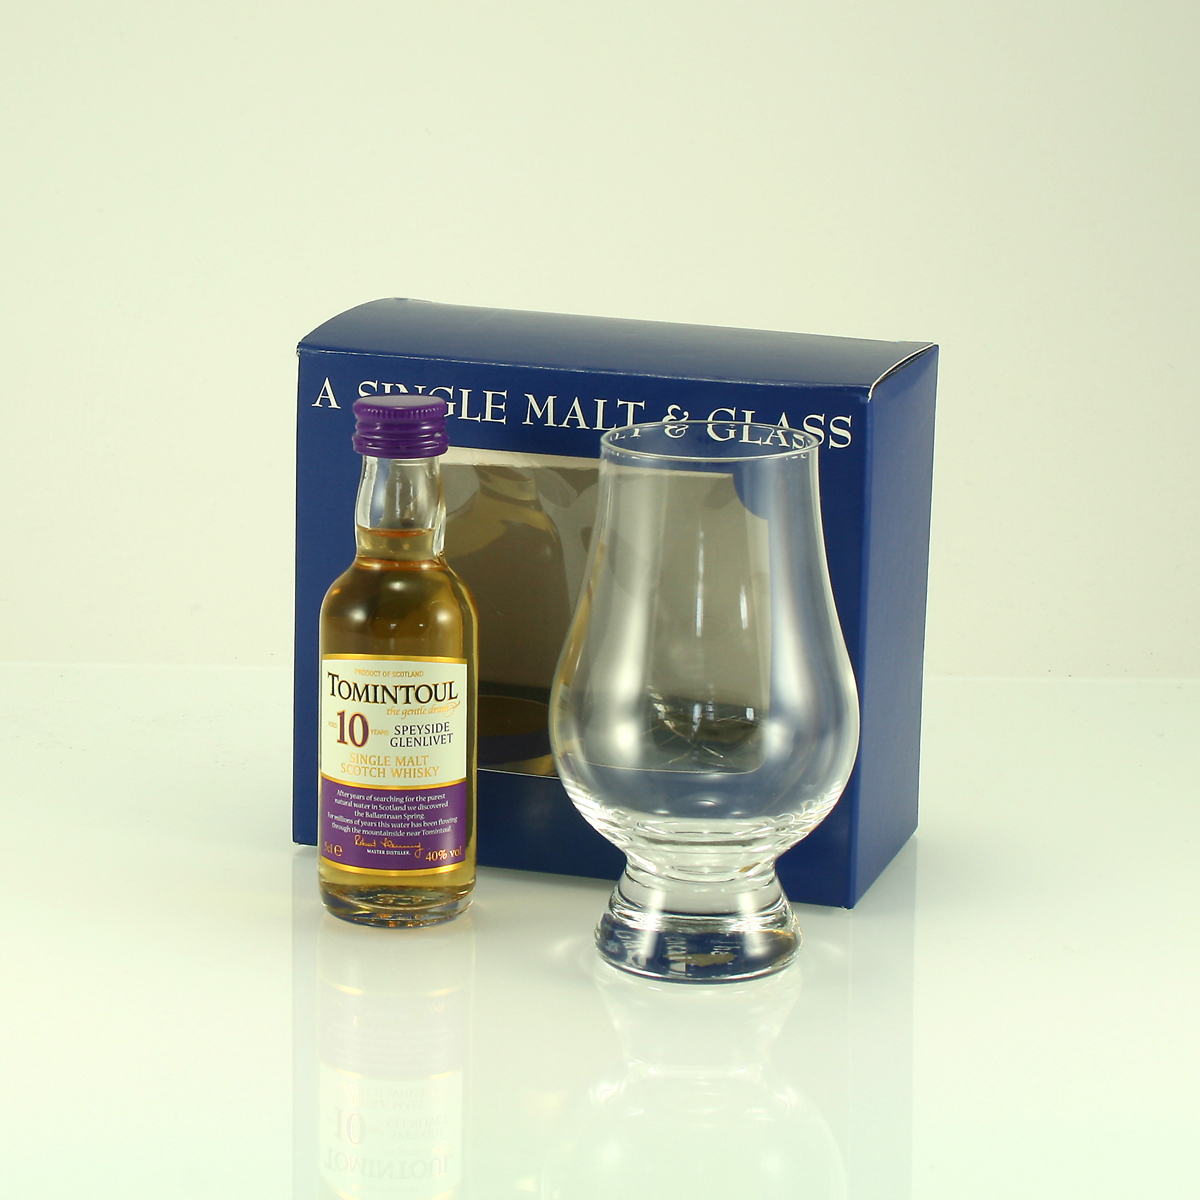 TOMINTOUL 10 Y/O Gift Pack with Glencairn Glass 40% 5cl